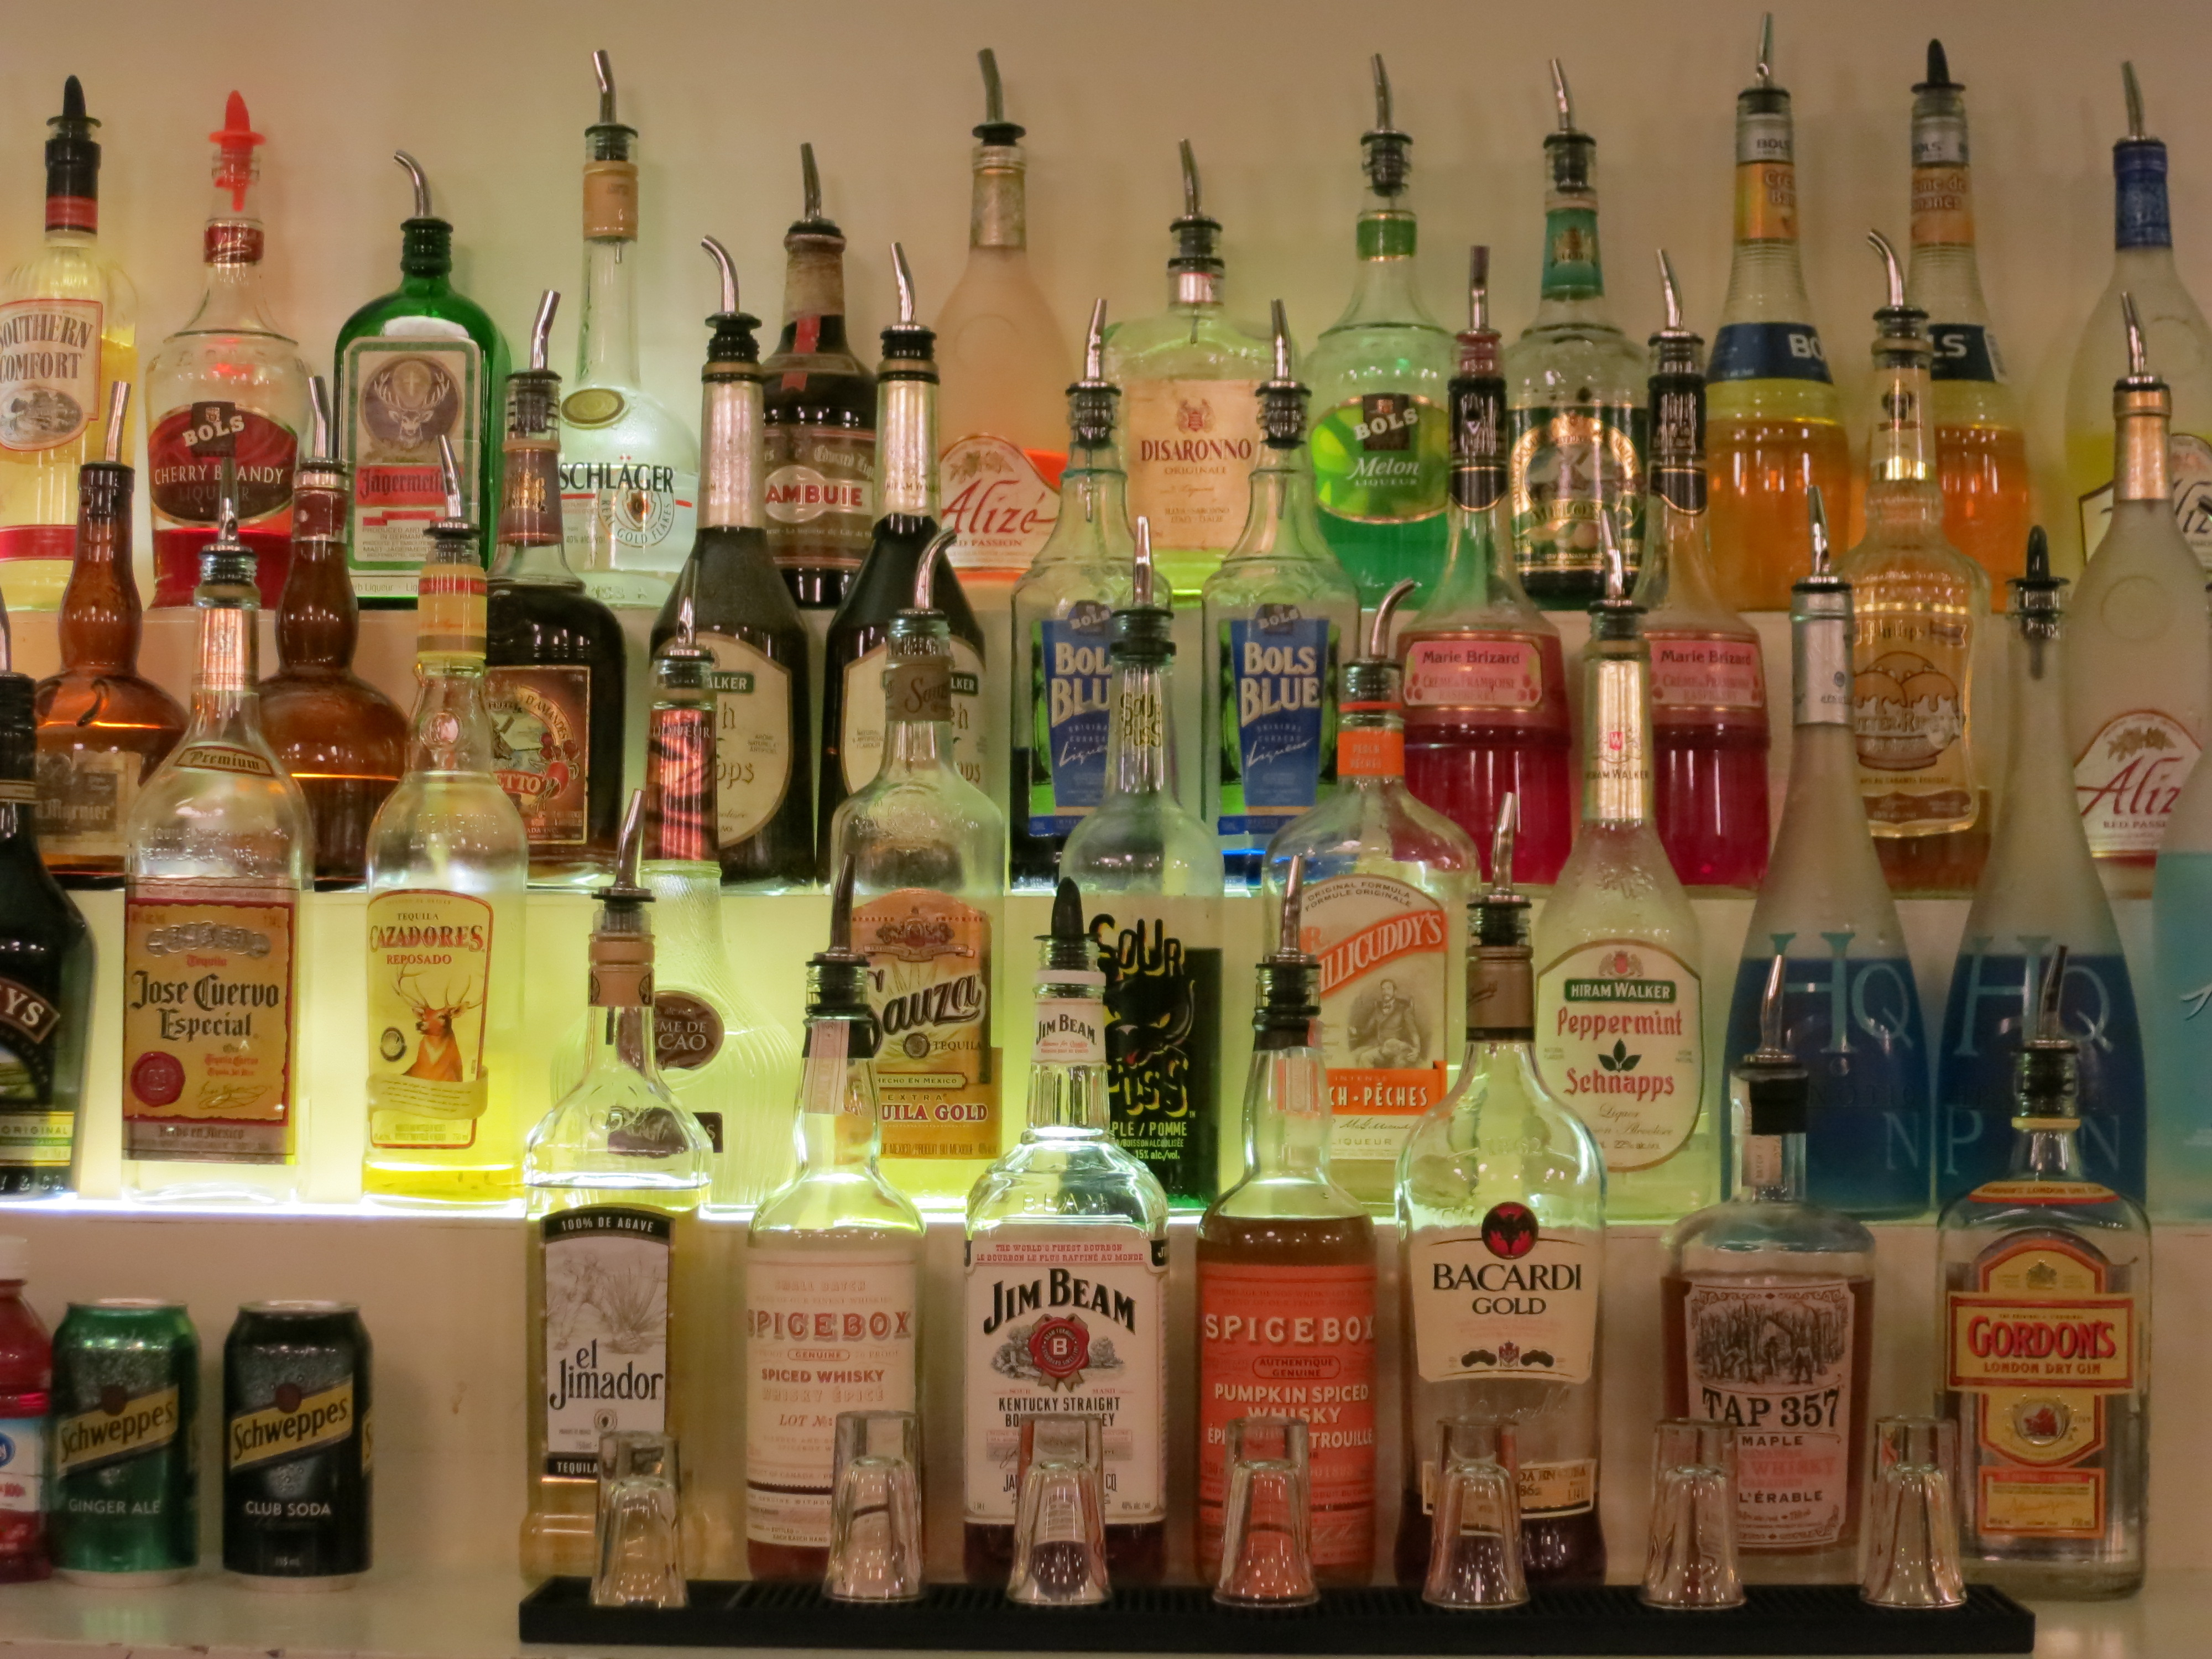 Different bottles of liquor lined up on shelves at the Metropolitan Bartending School in Vancouver, BC